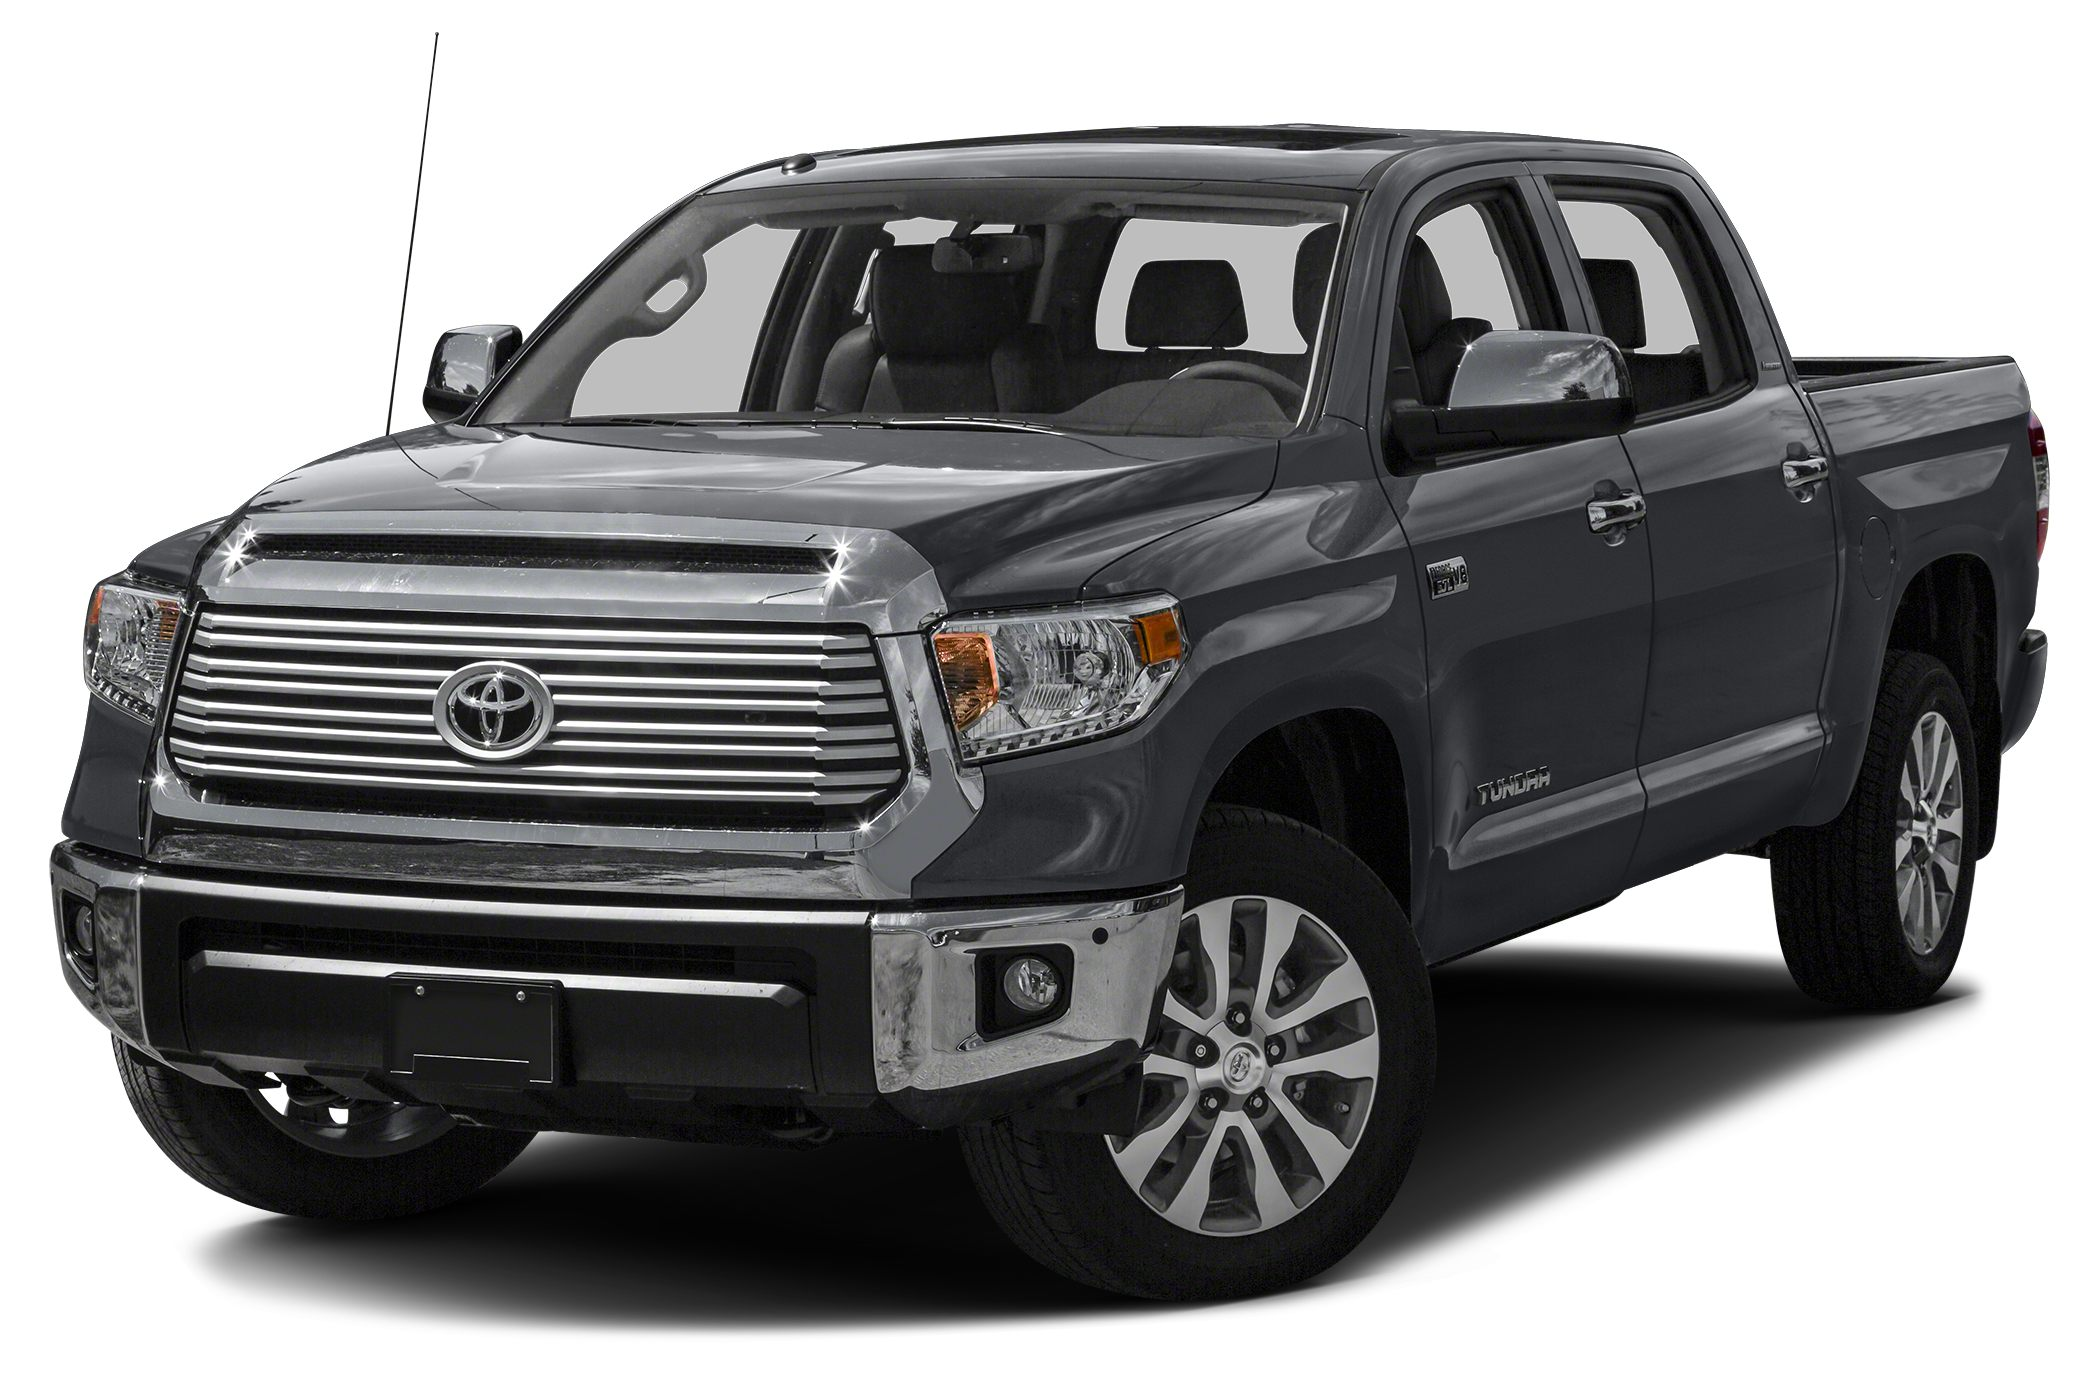 2016 Toyota Tundra Limited Miles 0Color Magnetic Gray Metallic Stock 09579 VIN 5TFFW5F17GX20